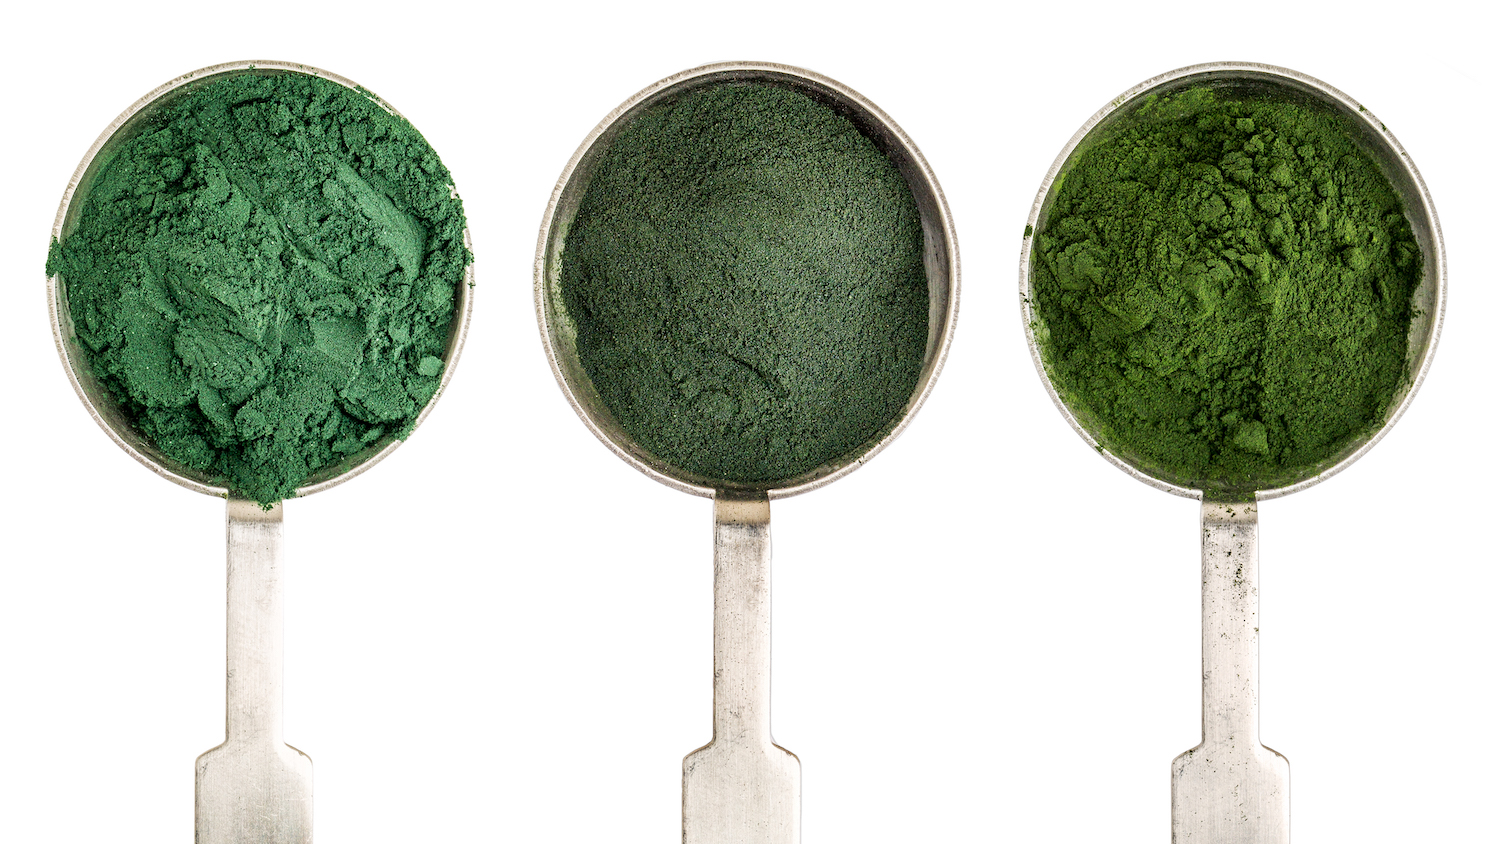 Everything You Need to Know About the Superfood That's Actually Just Pond Scum